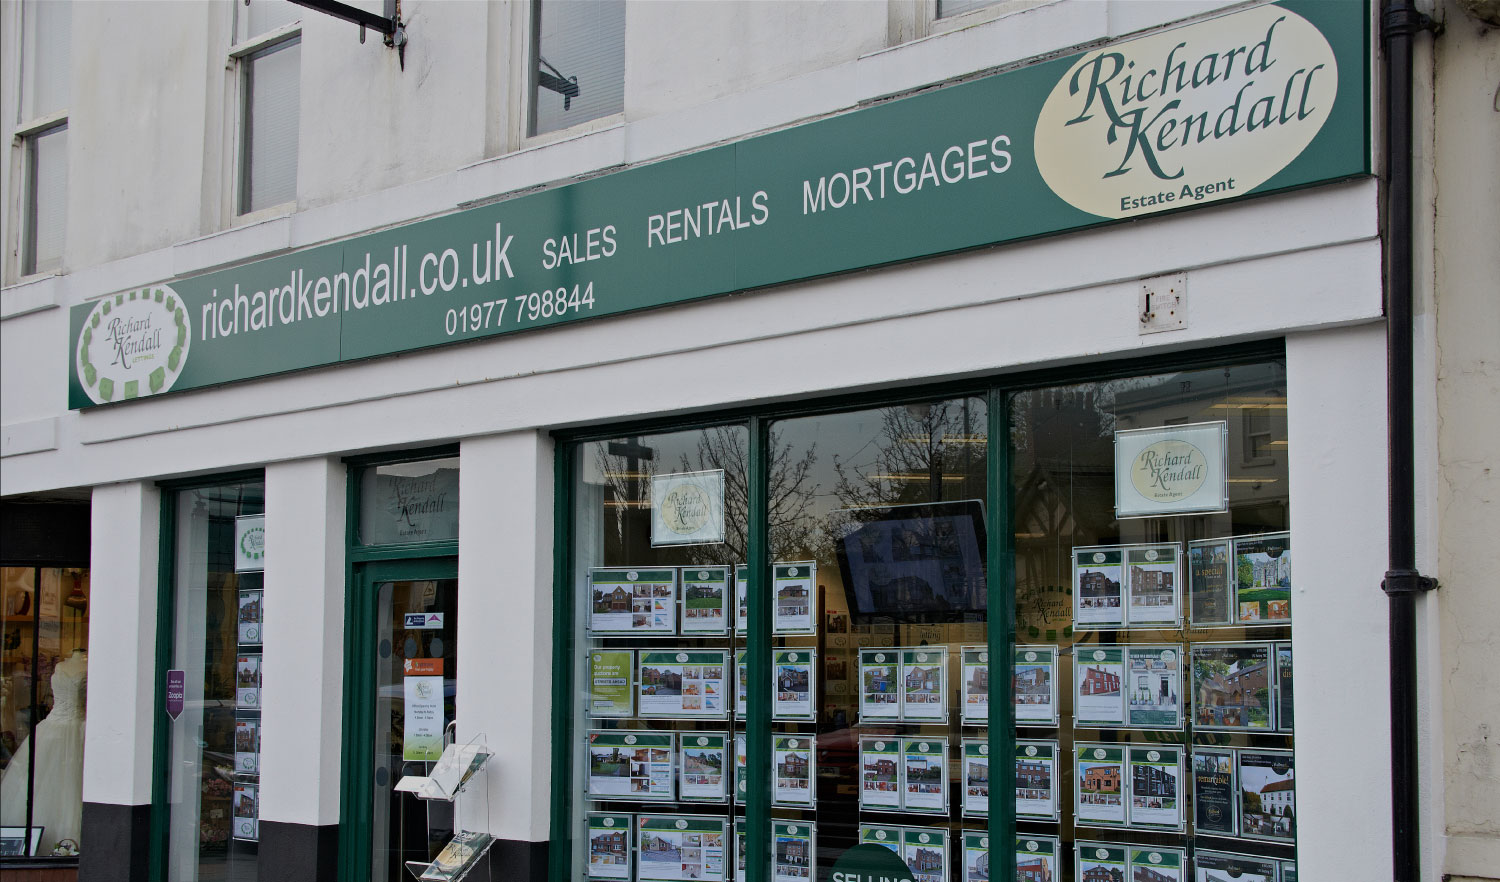 richard-kendall-estate-agents-pontefract-office